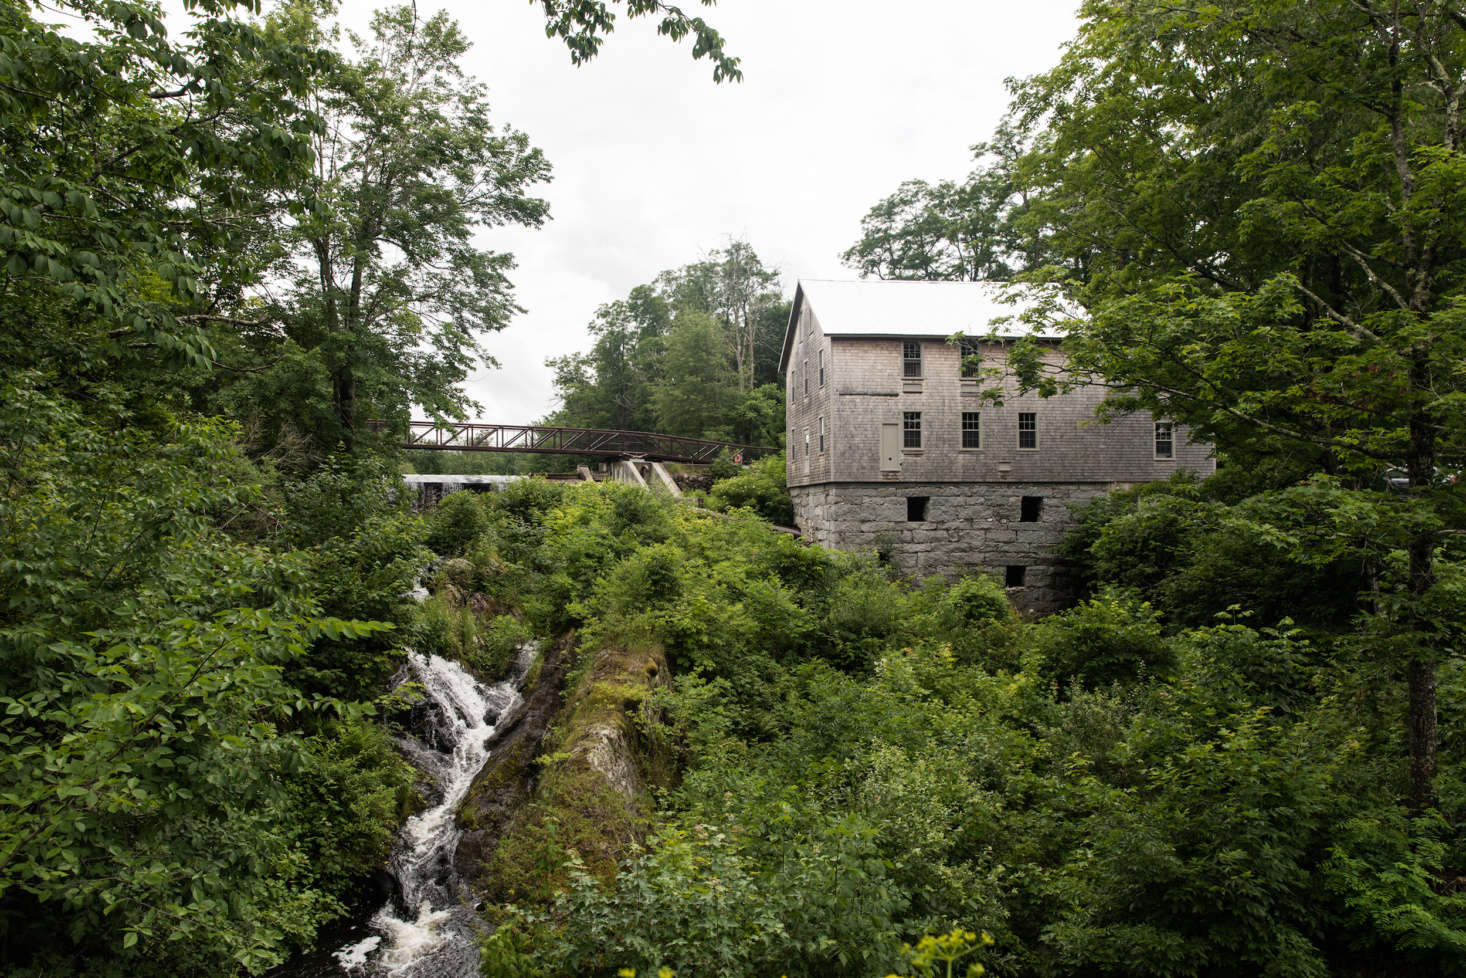 The Mill at Freedom Falls, where the Lost Kitchen is located, is perched above a wide creek. The 34 building was formerly a gristmill, then a turning mill, but had been abandoned for decades and was in danger of falling into the creek before local conservationists and Cold Mountain Builders worked to restore it, shoring up the granite foundation and replacing the timbers.